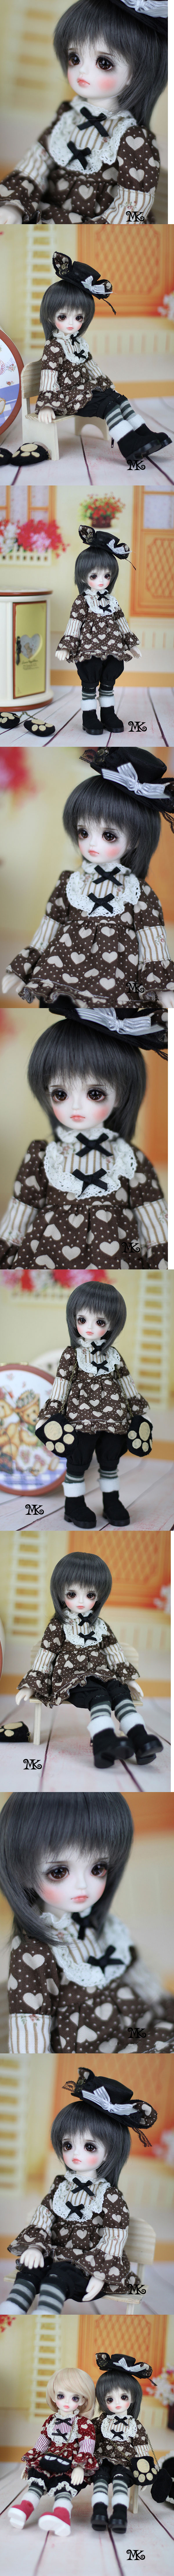 BJD Eddy 27cm Girl Ball-jointed doll